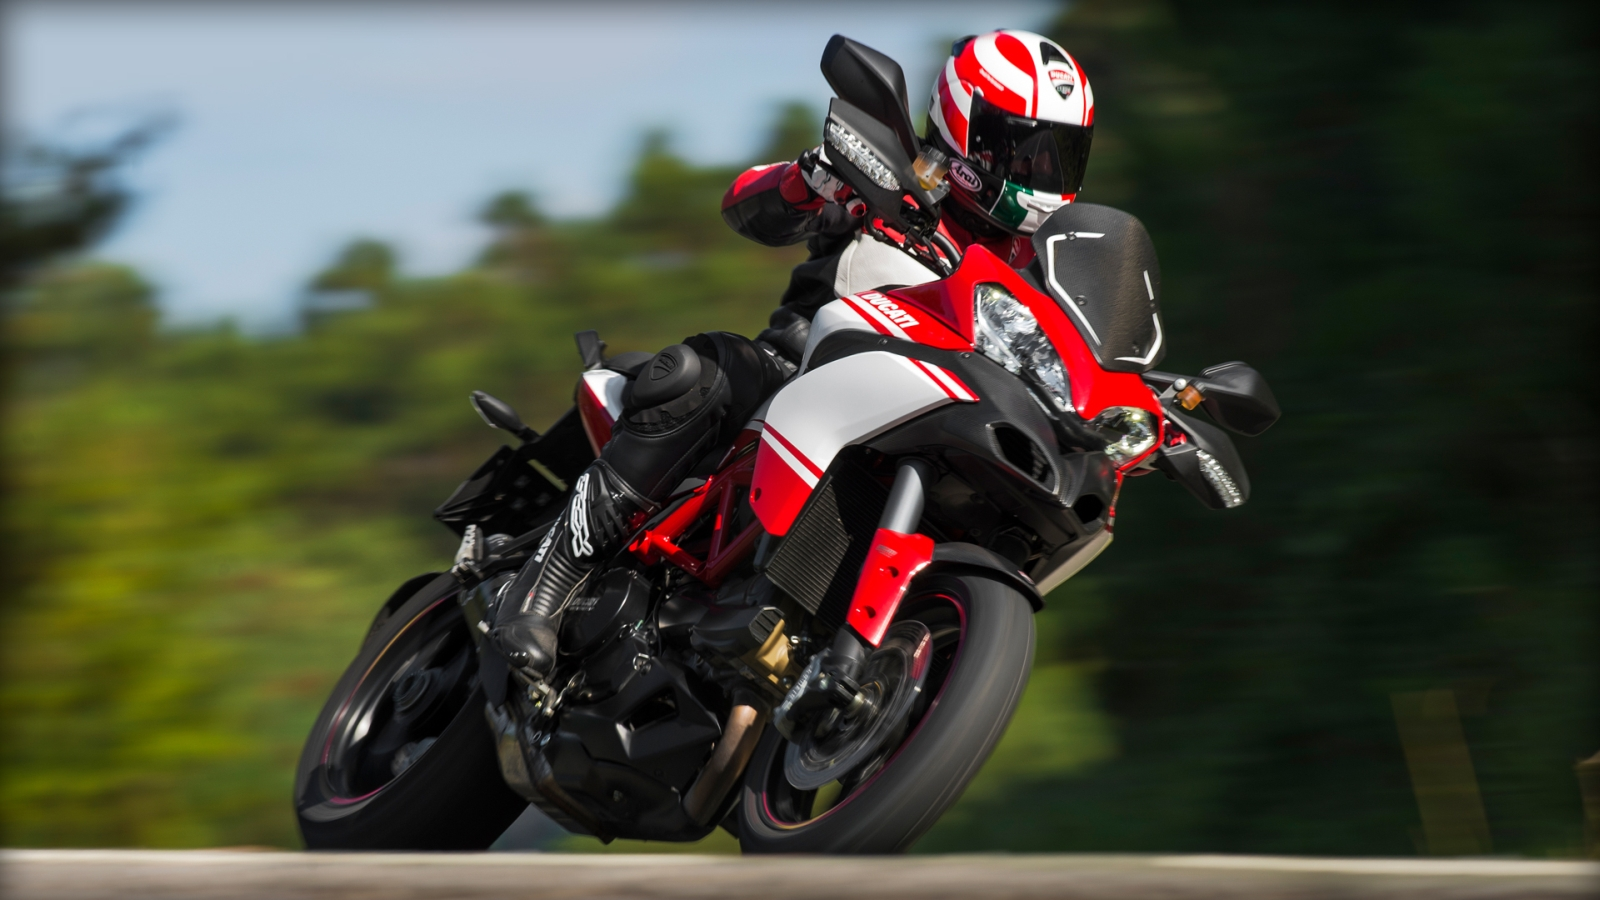 Ducati Multistrada 1200 S Pikes Peak Edition 2014 wallpapers #13072